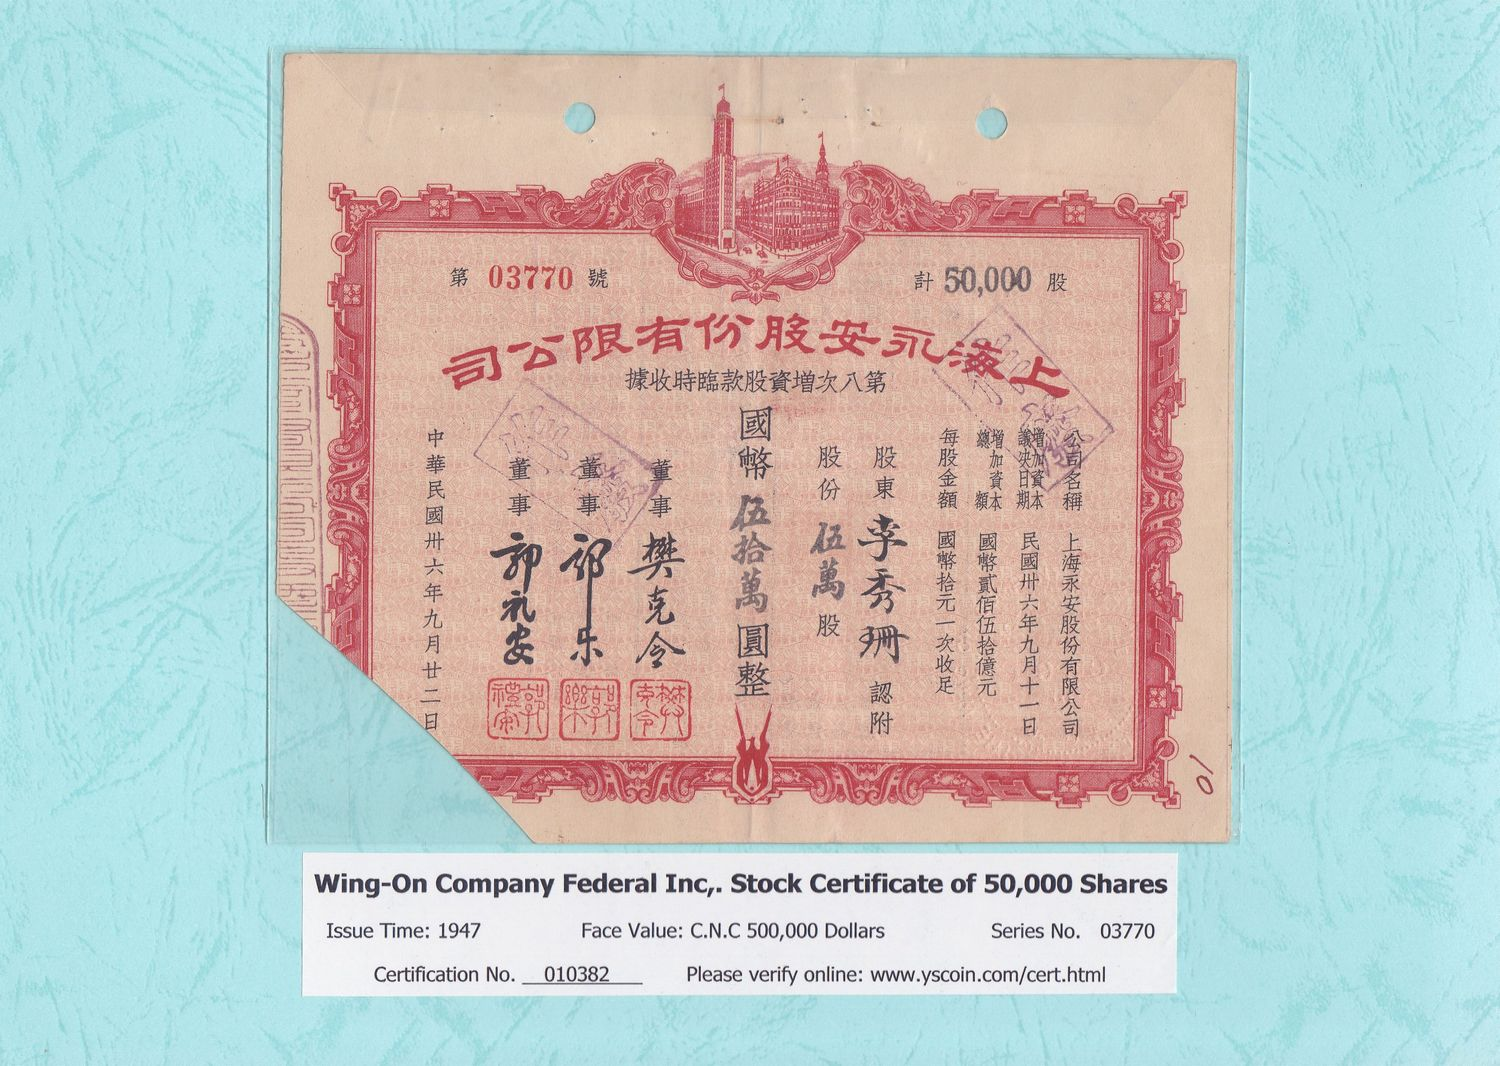 010382, Wing-On Company Federal Inc,. Stock Certificate of 100,000 Shares